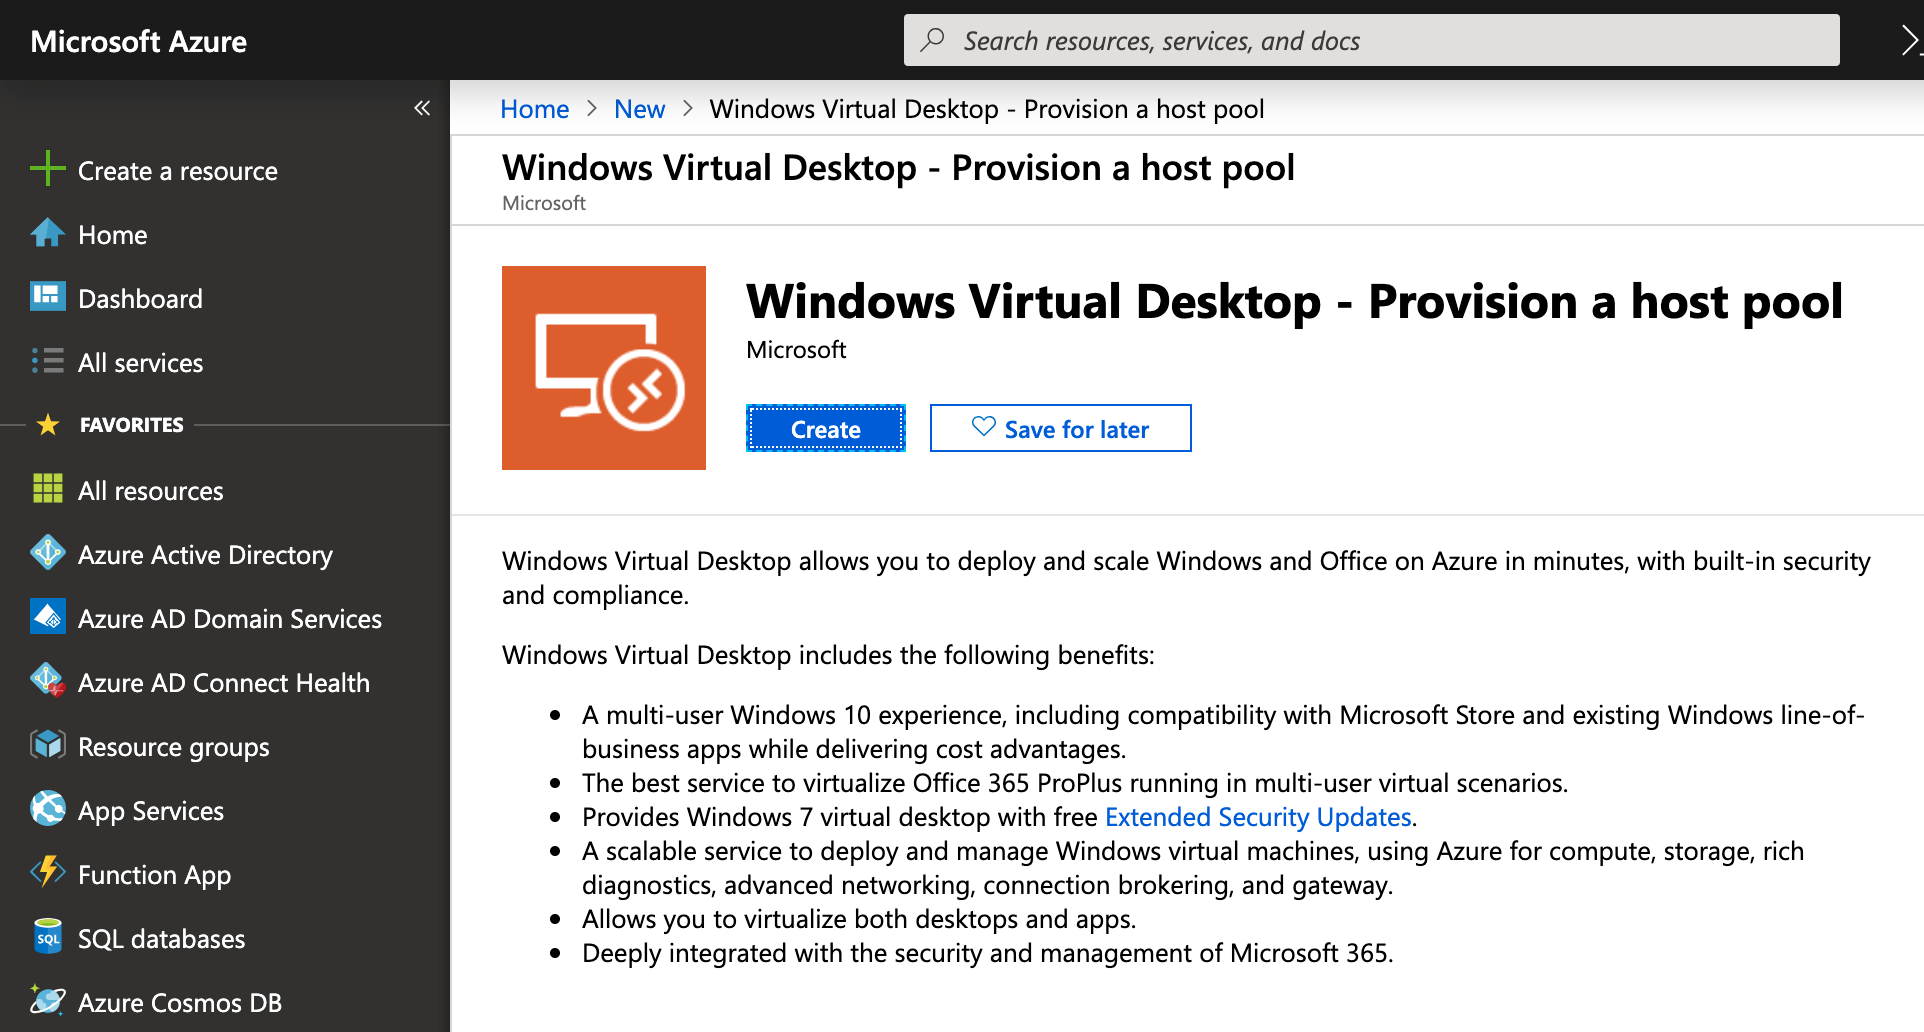 Deploying Windows Virtual Desktop on Azure – Step by Step